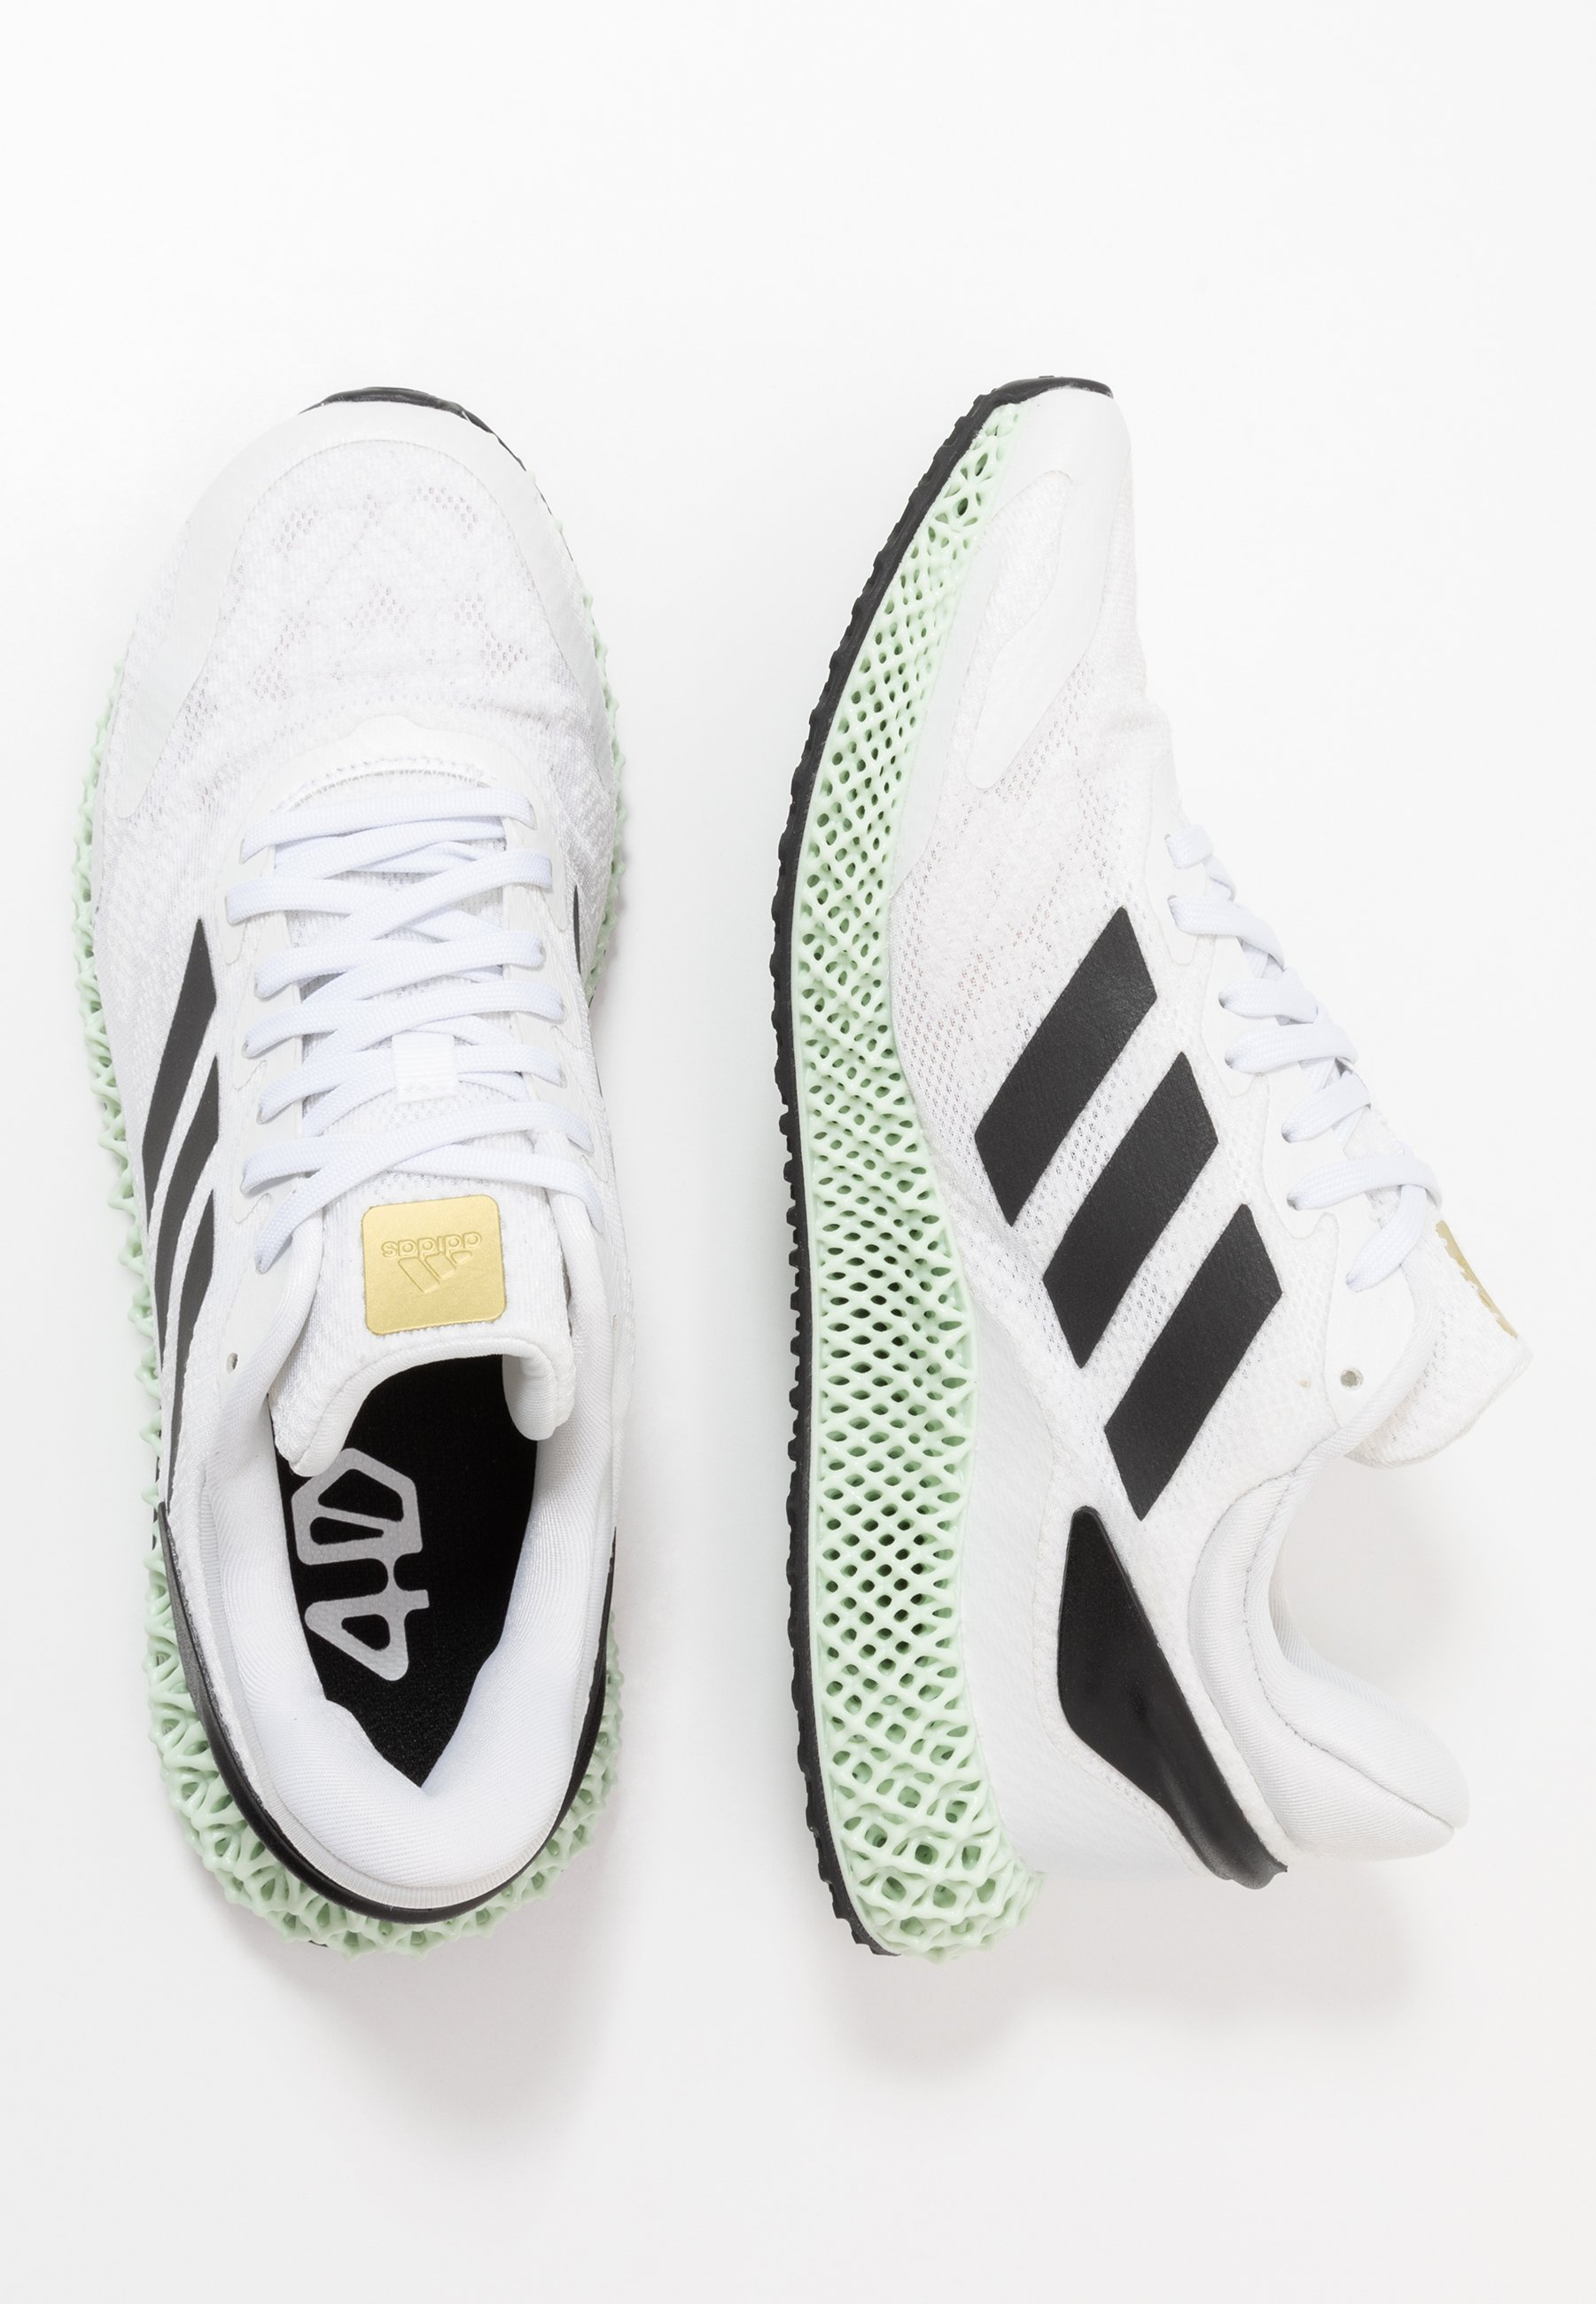 Adidas Performance 4d 1.0 - Neutral Running Shoes Footwear White/core Black/gold